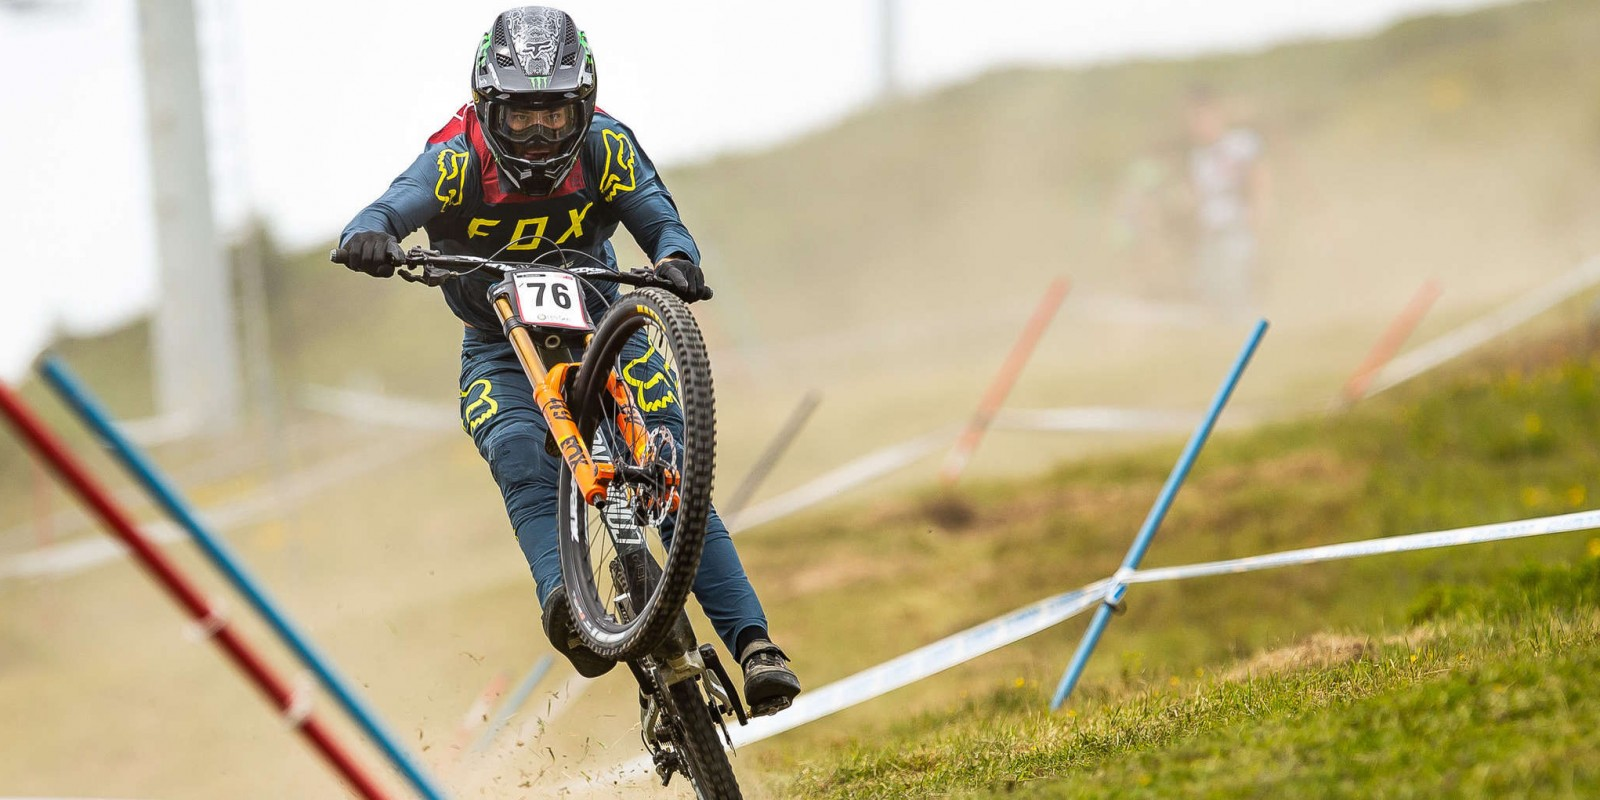 Images from the 2019 Mountain Bike World Cup Les Gets, France.